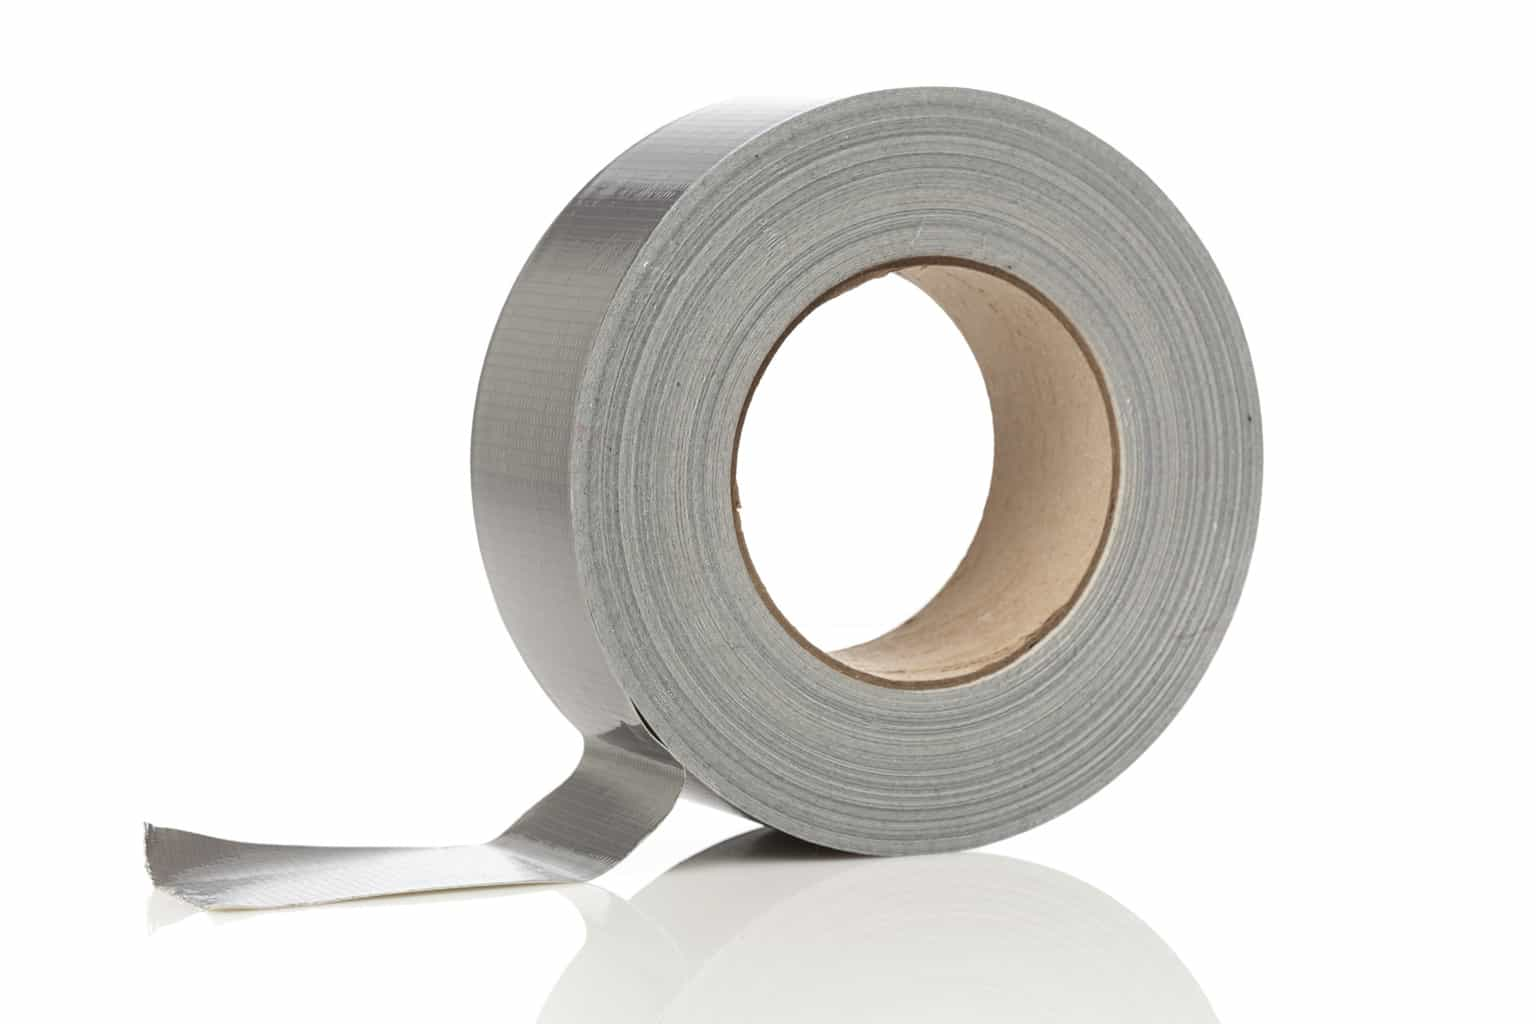 Duct Tape Fire Starter: